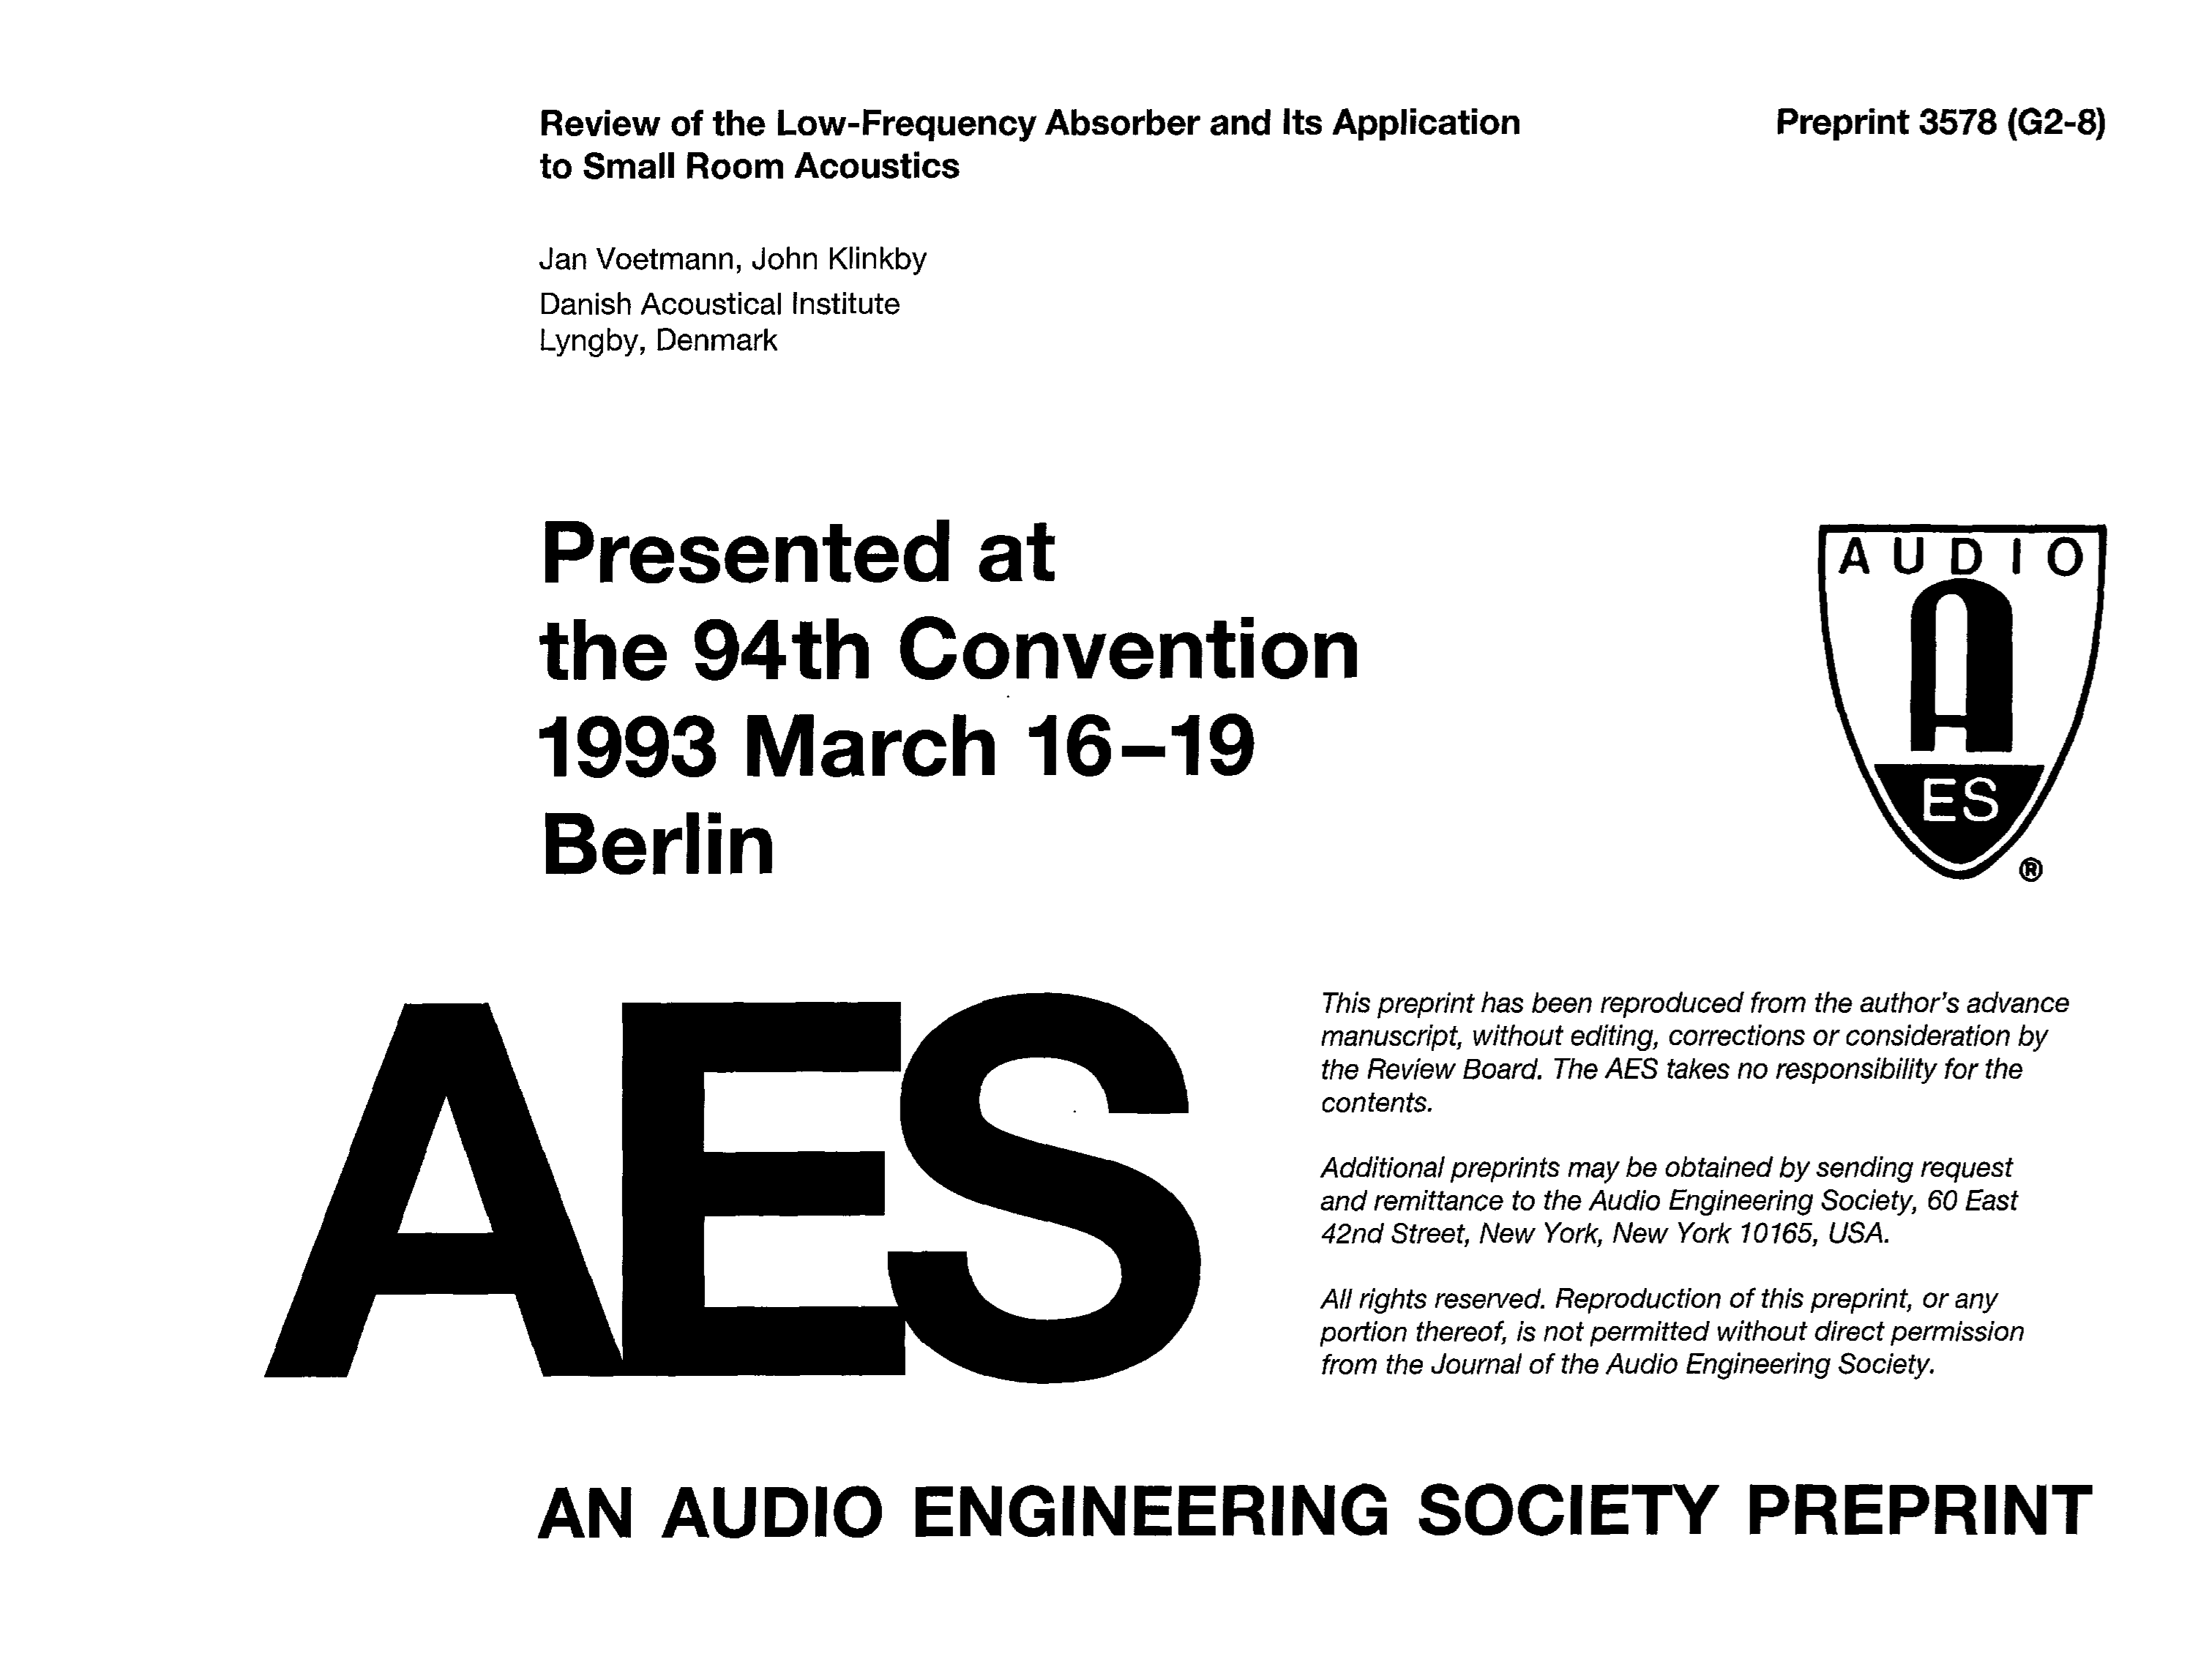 Aes E Library Review Of The Low Frequency Absorber And Its Ground Is A Different Process From Panel To Attached Thumbnails Application Small Room Acoustics